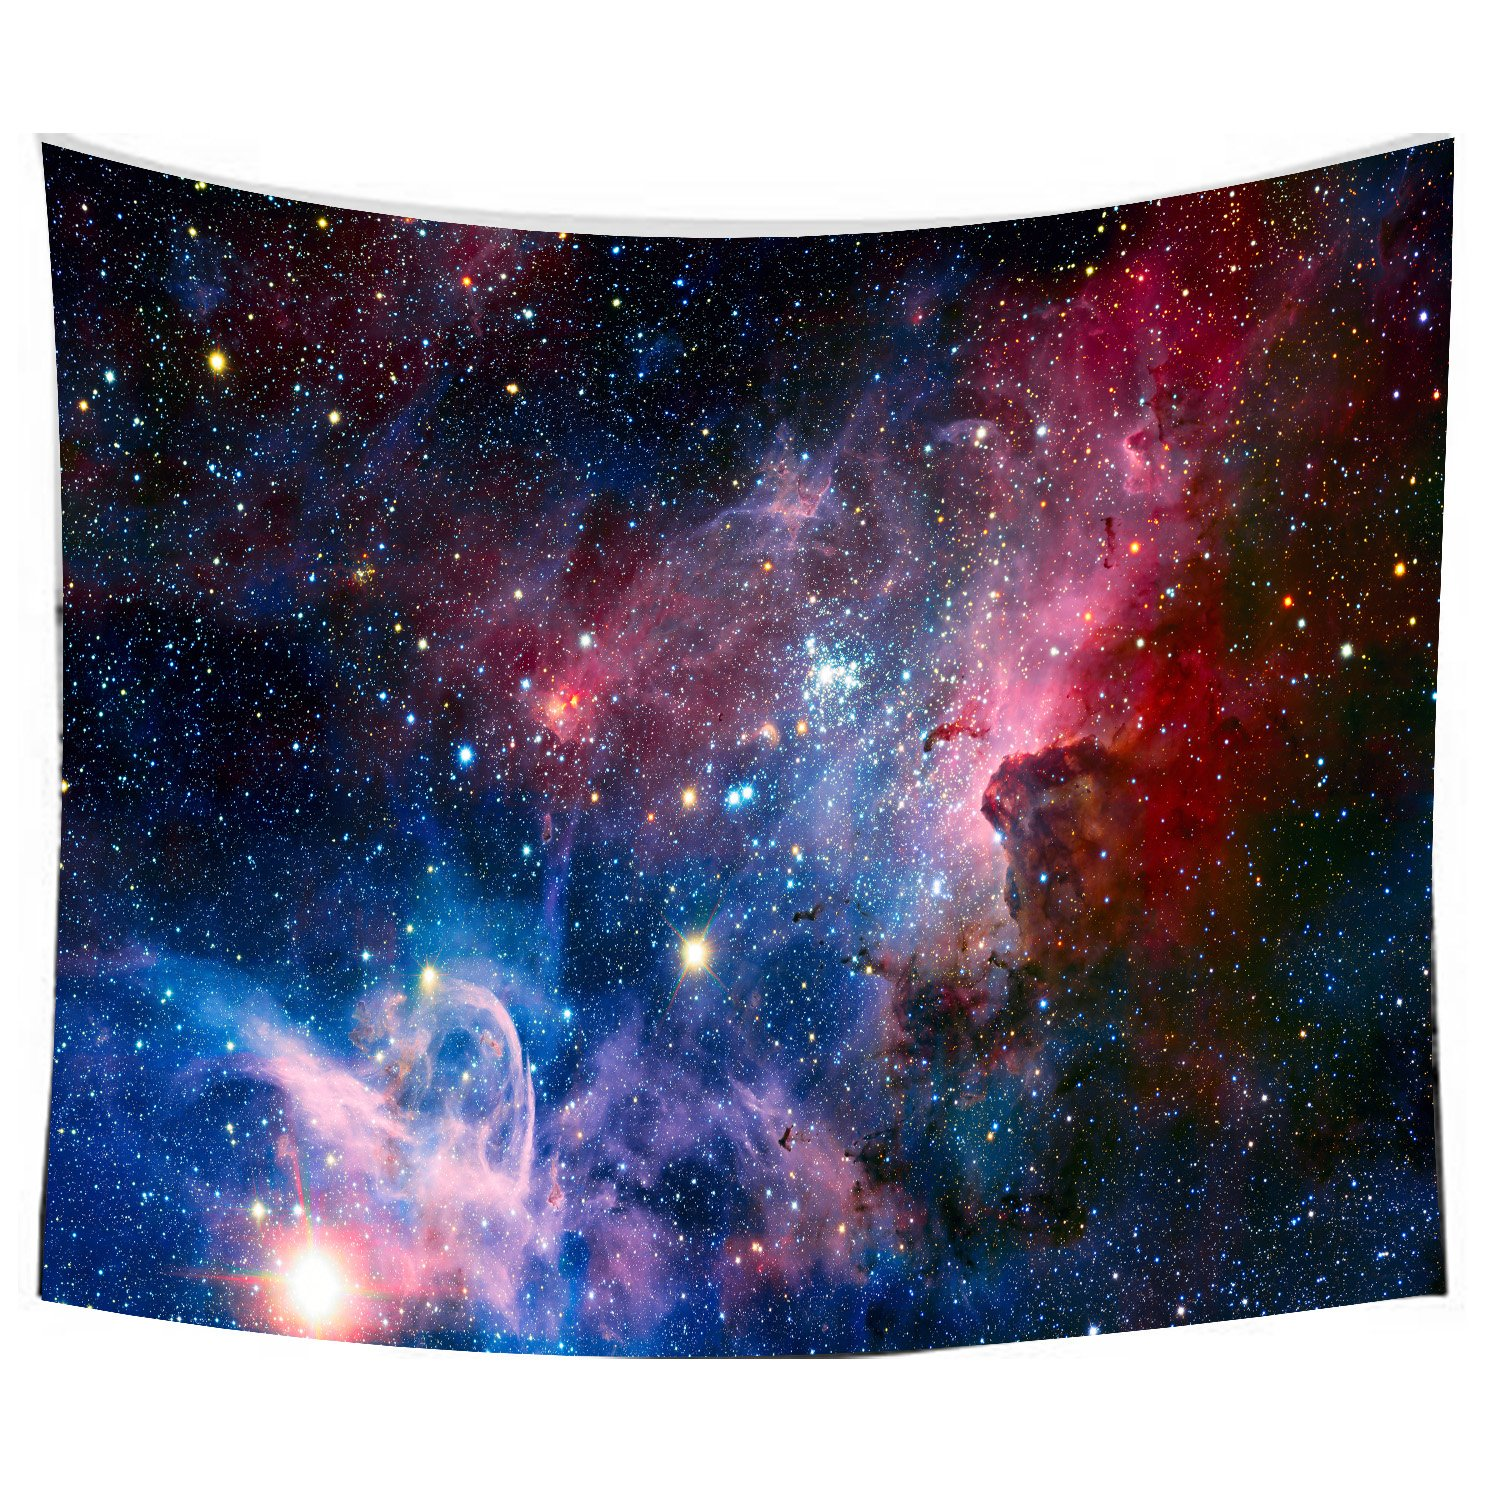 Starry Sky Tapestry, Home 3D Cosmic Galaxy Tapestry, Living Room Bedroom Decoration Tapestry, Mattress, Tablecloth (51.2''X59.1'', Starry Sky)